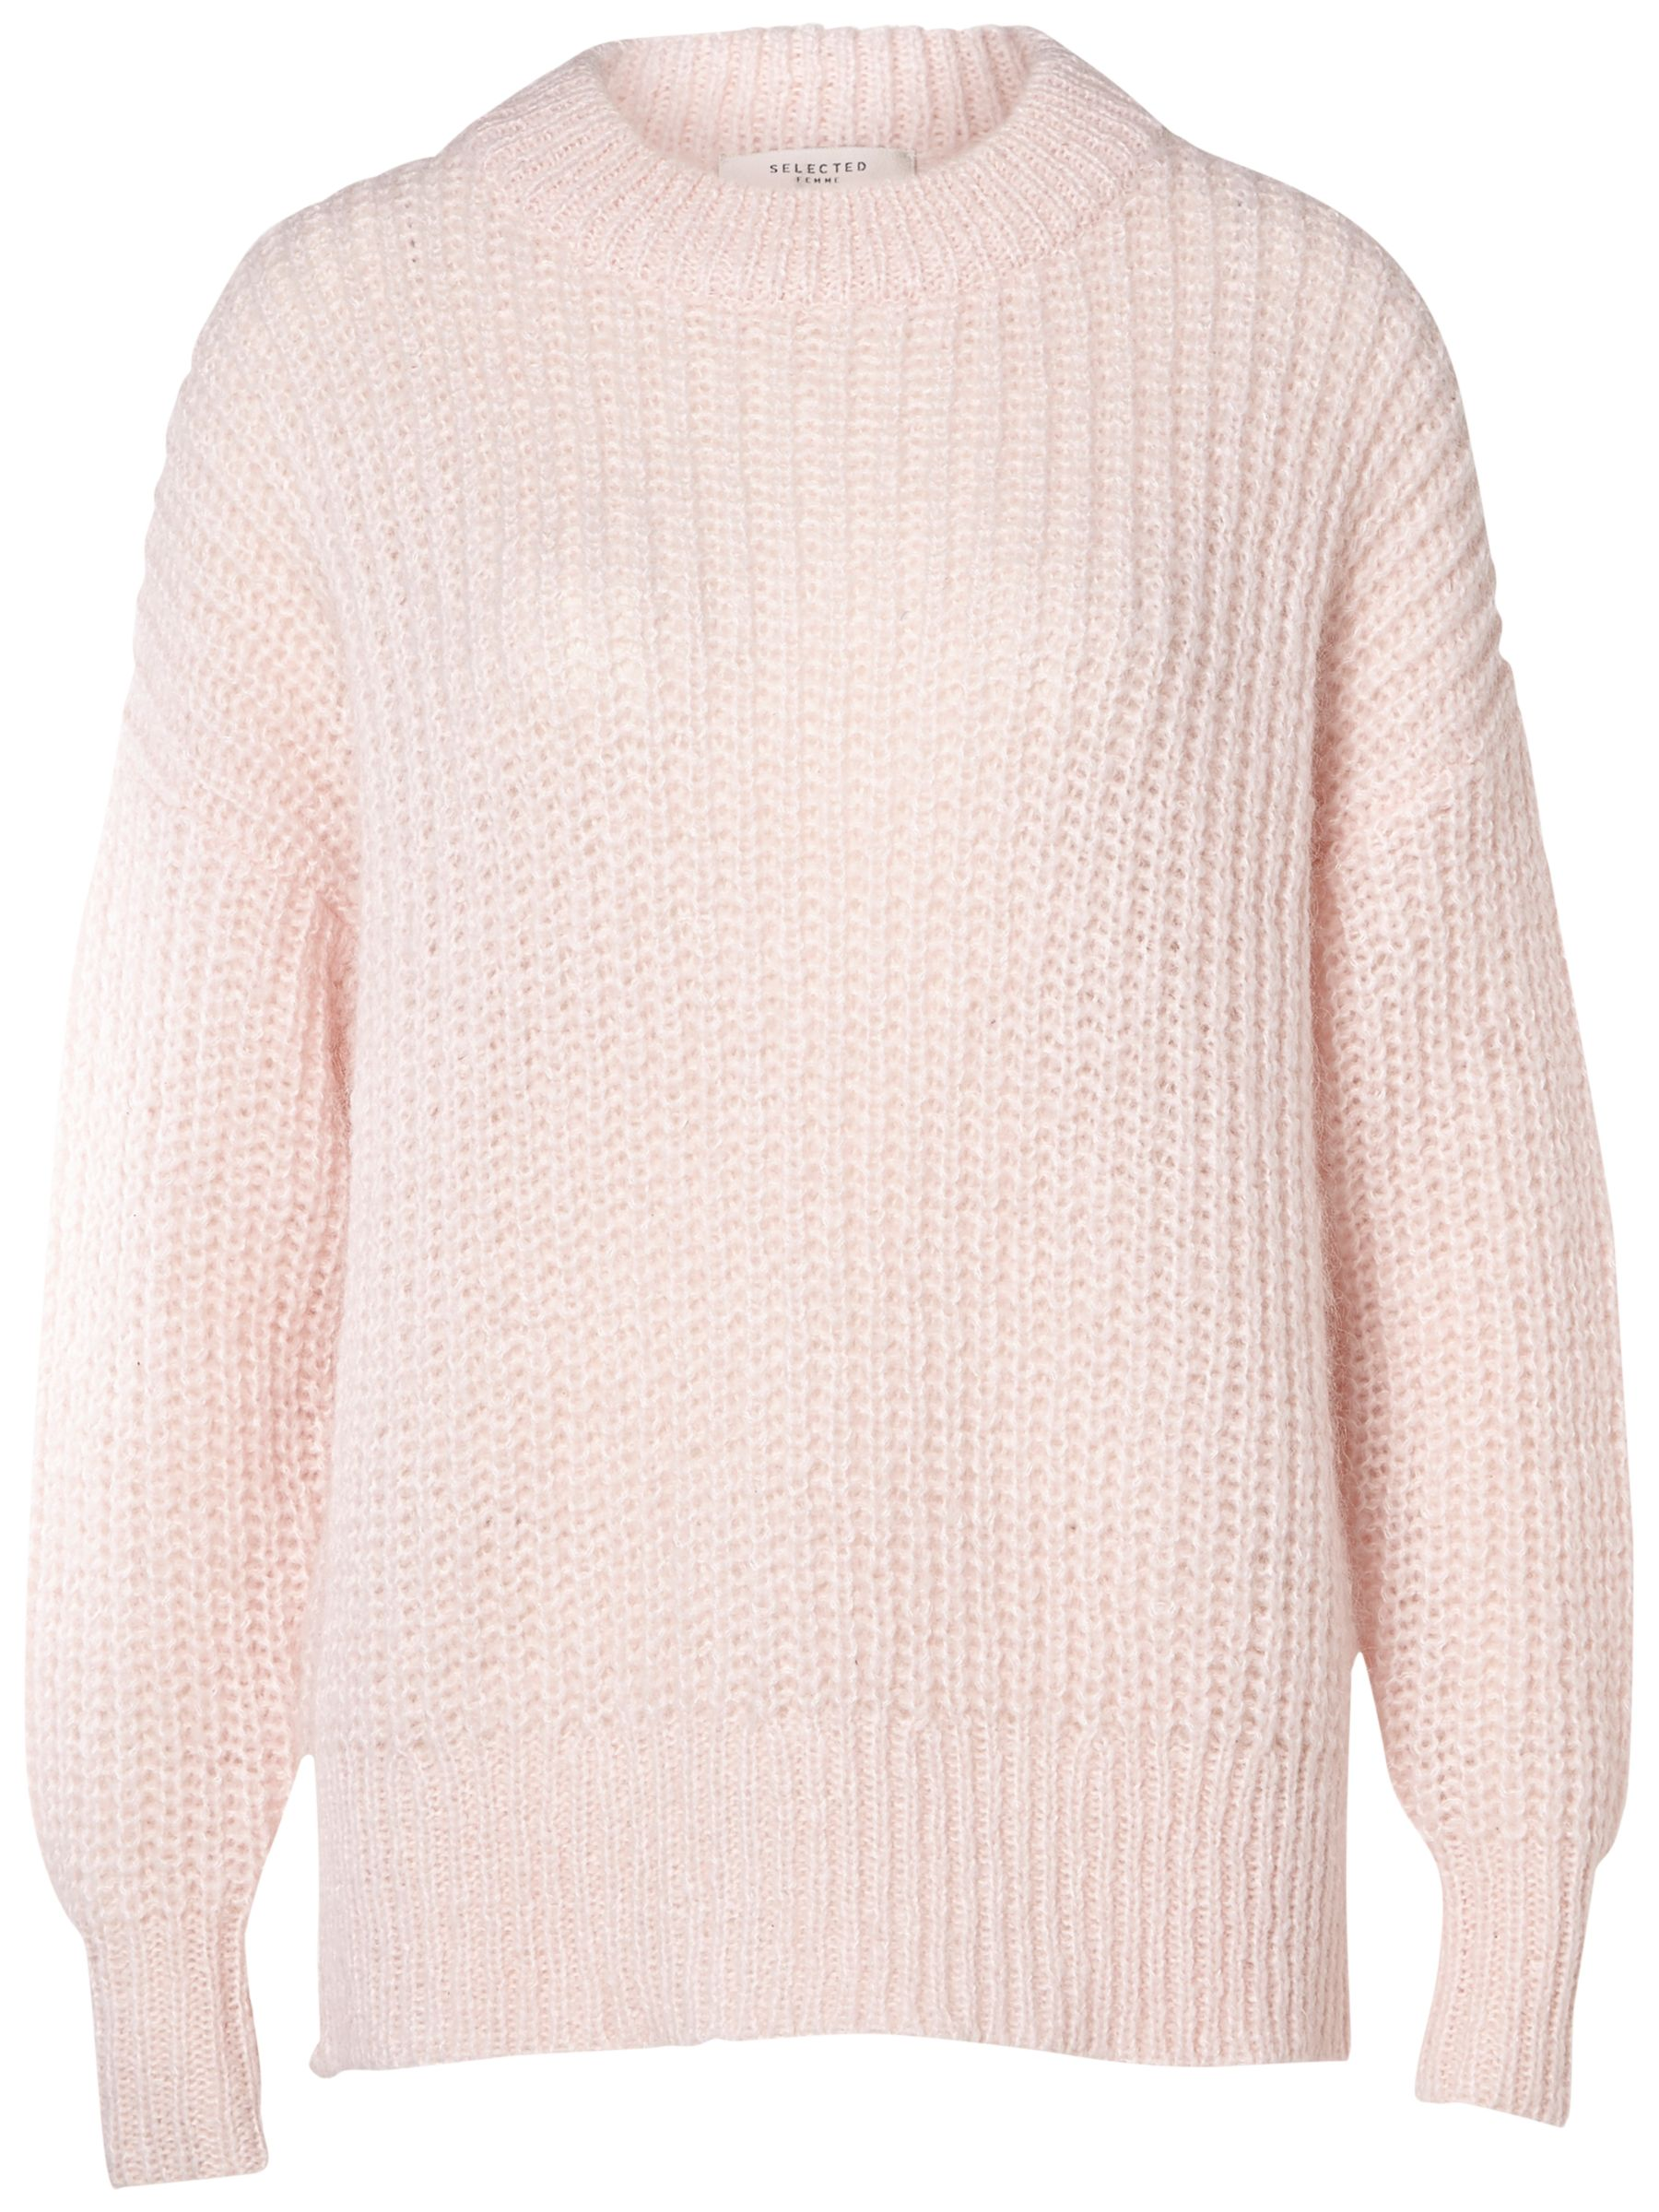 Selected Femme Selected Femme Hema Chunky Knit Jumper, Heavenly Pink